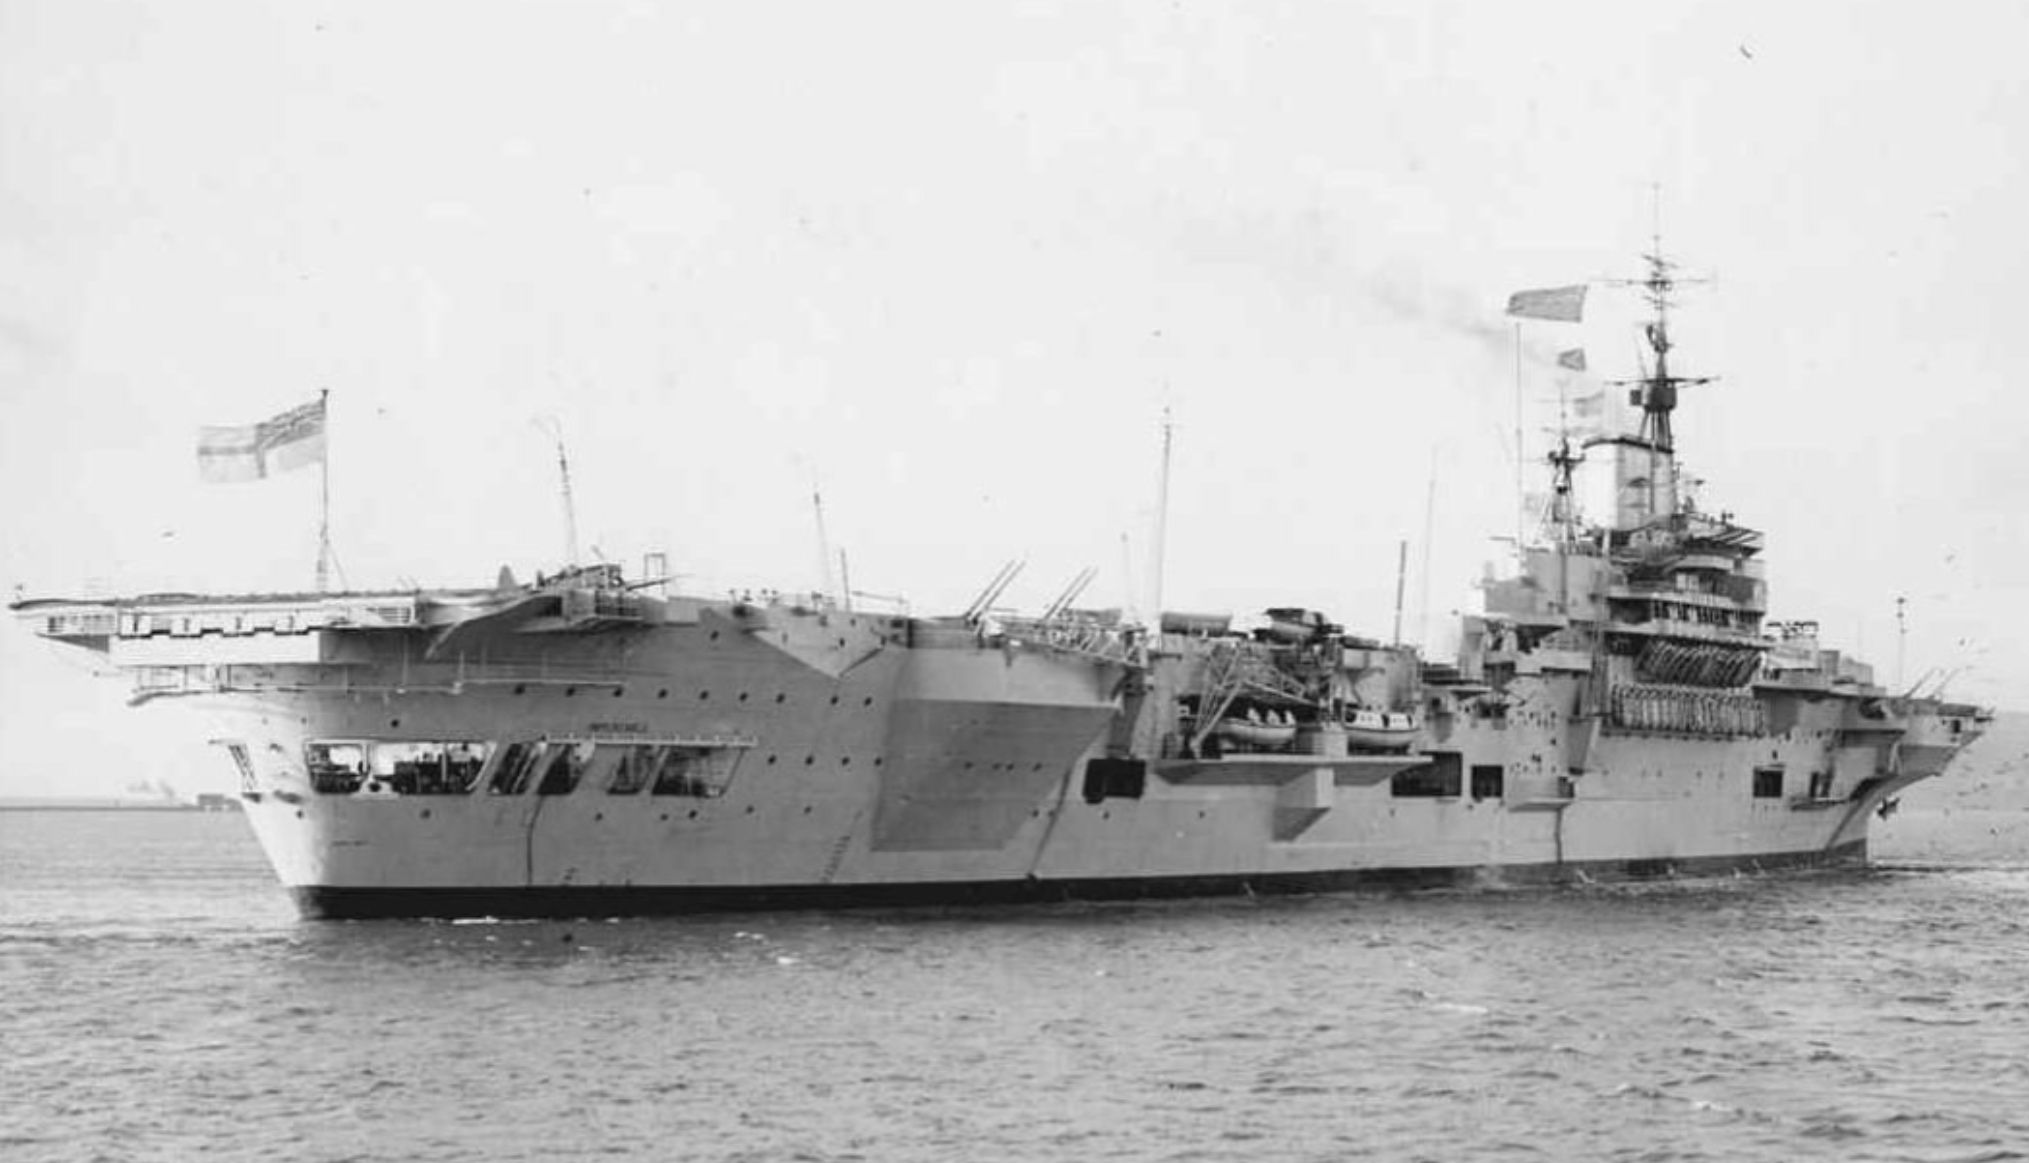 HMS Implacable (R86) was an Implacable-class aircraft ...